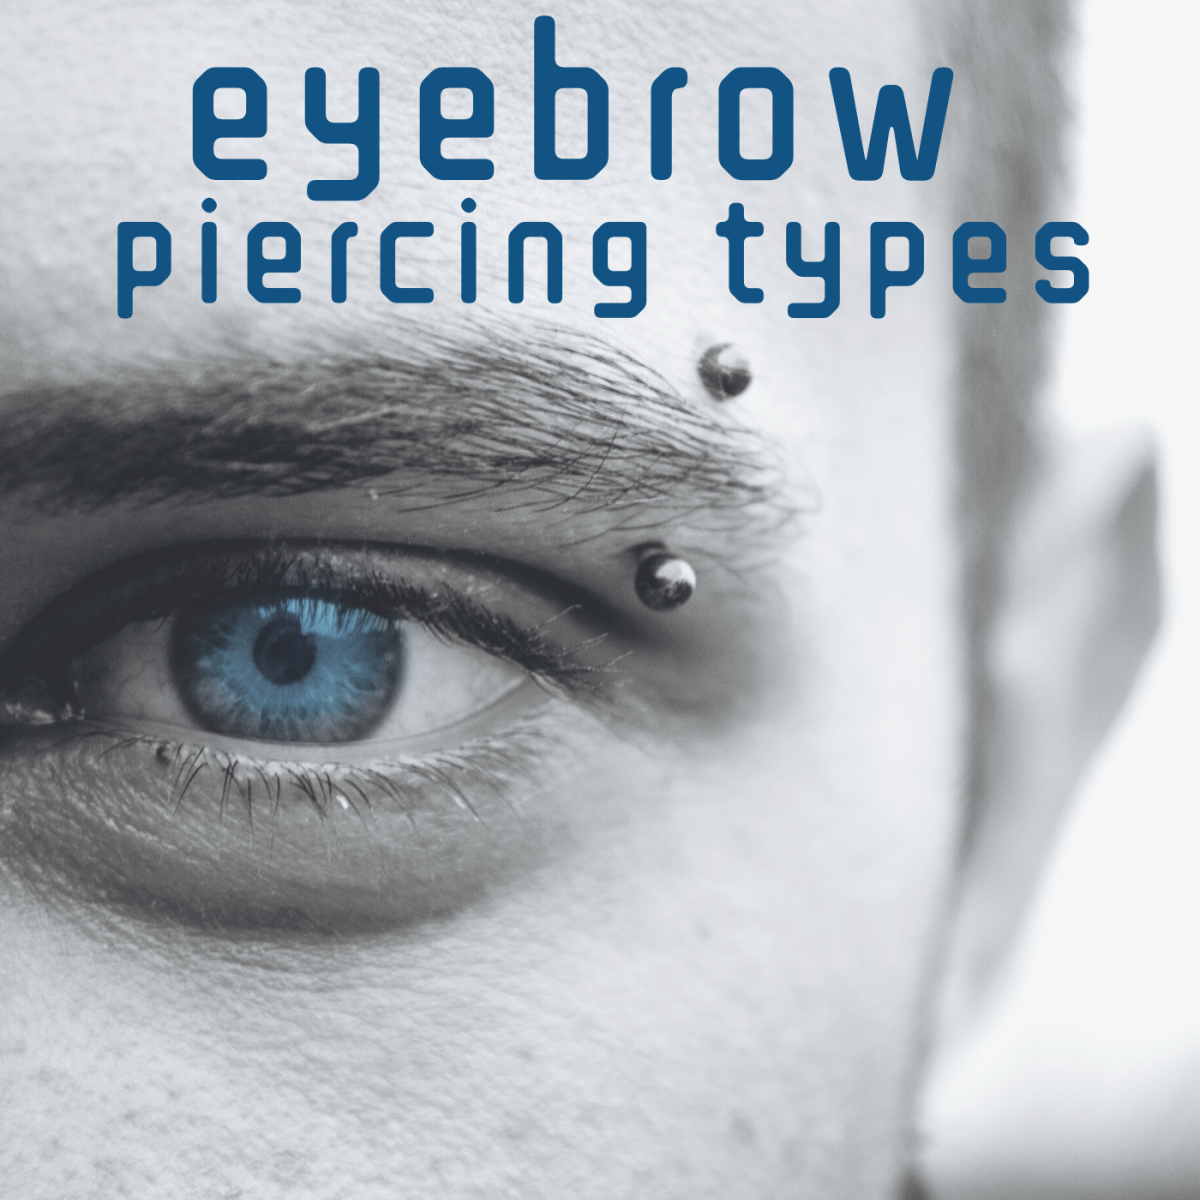 Learn about the wide variety of eyebrow piercing options.